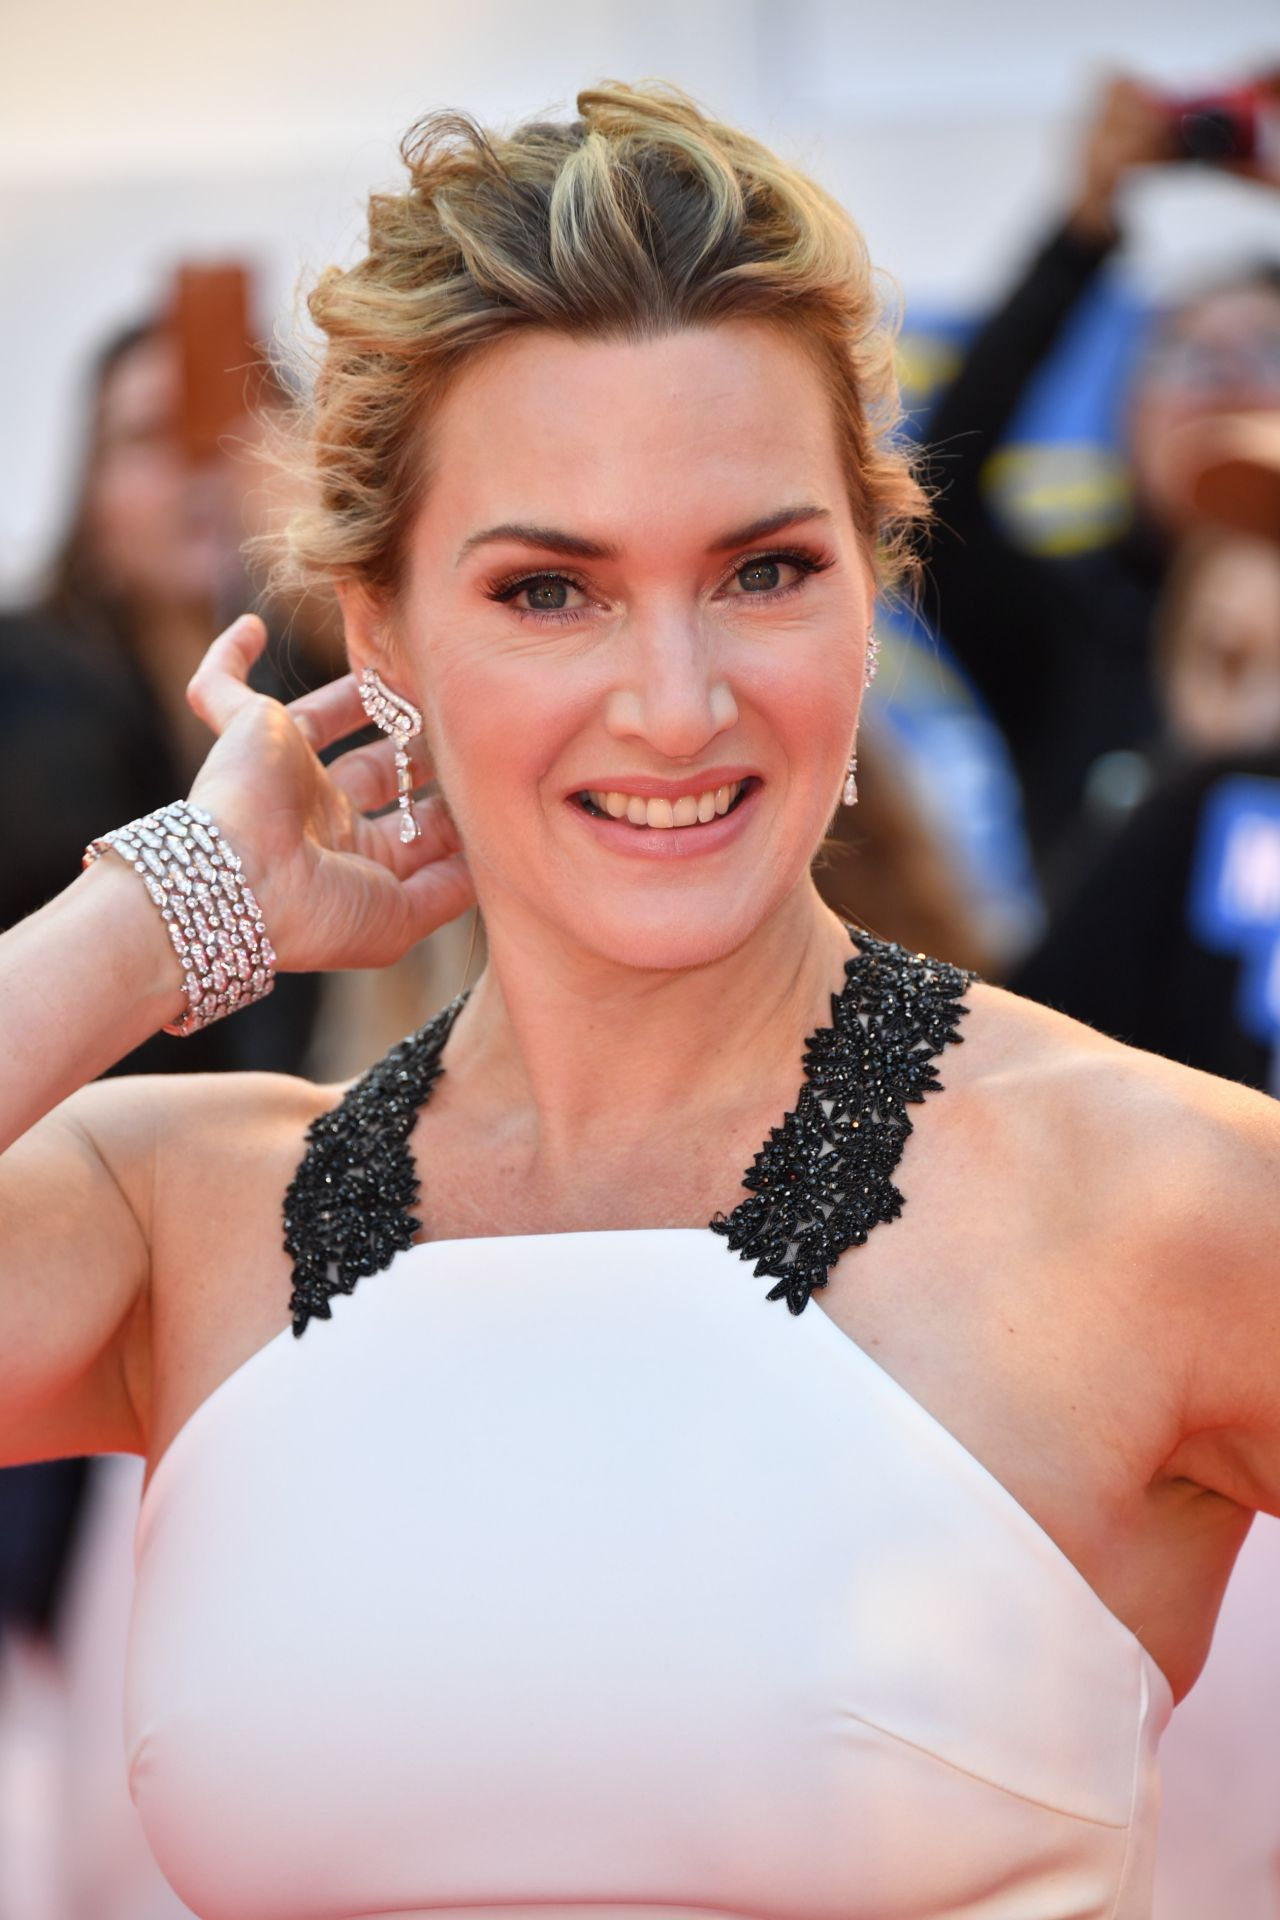 Kate Winslet Latest Photos - CelebMafia Kate Winslet